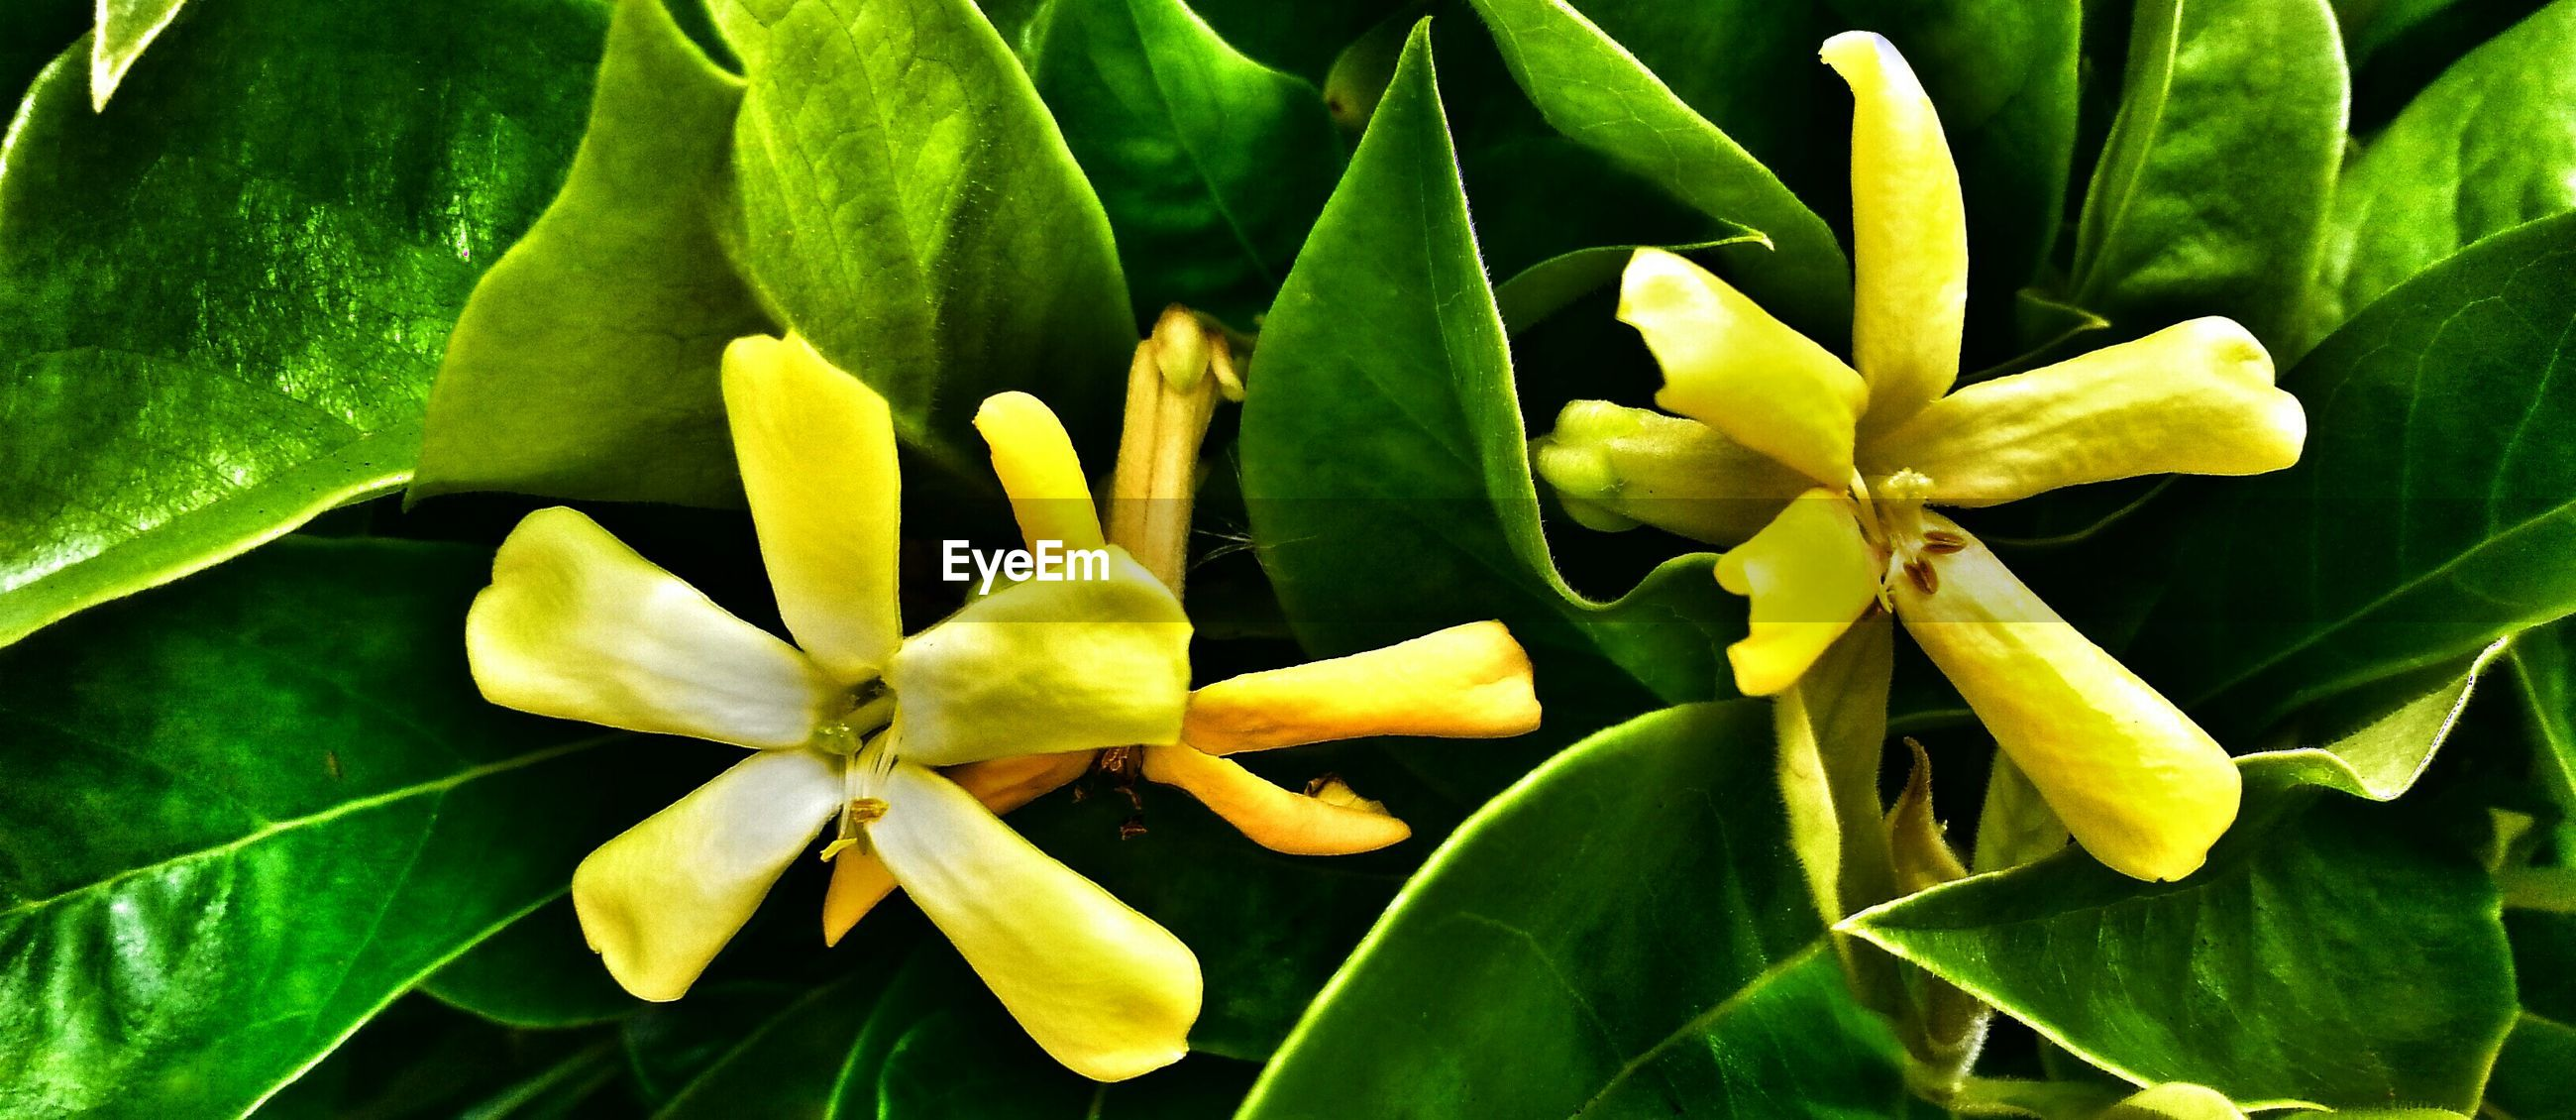 Close-up of yellow flowers blooming amidst leaves